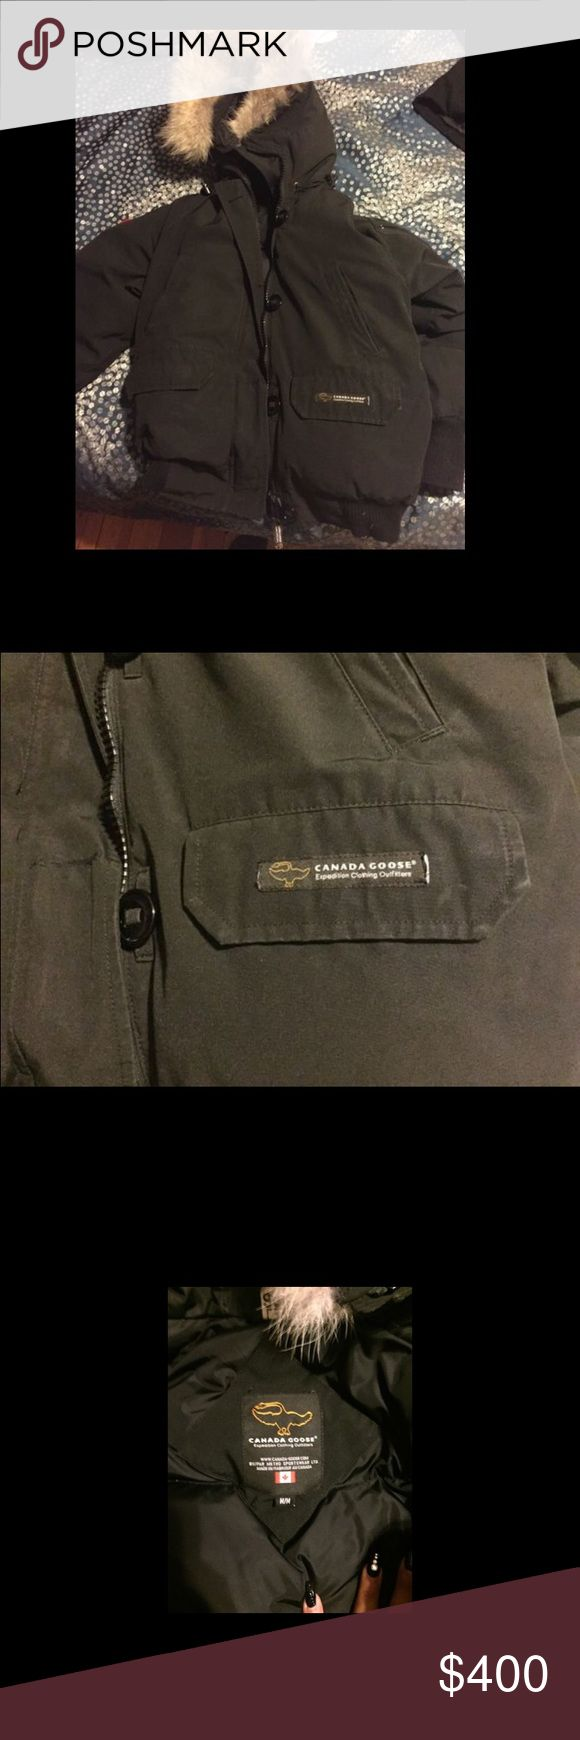 Canada Goose Jacket Used...But in great condition,very warm jacket. Lifetime warranty,authentic and i have to part with it because it no longer fits me. Canada Goose Jackets & Coats Puffers